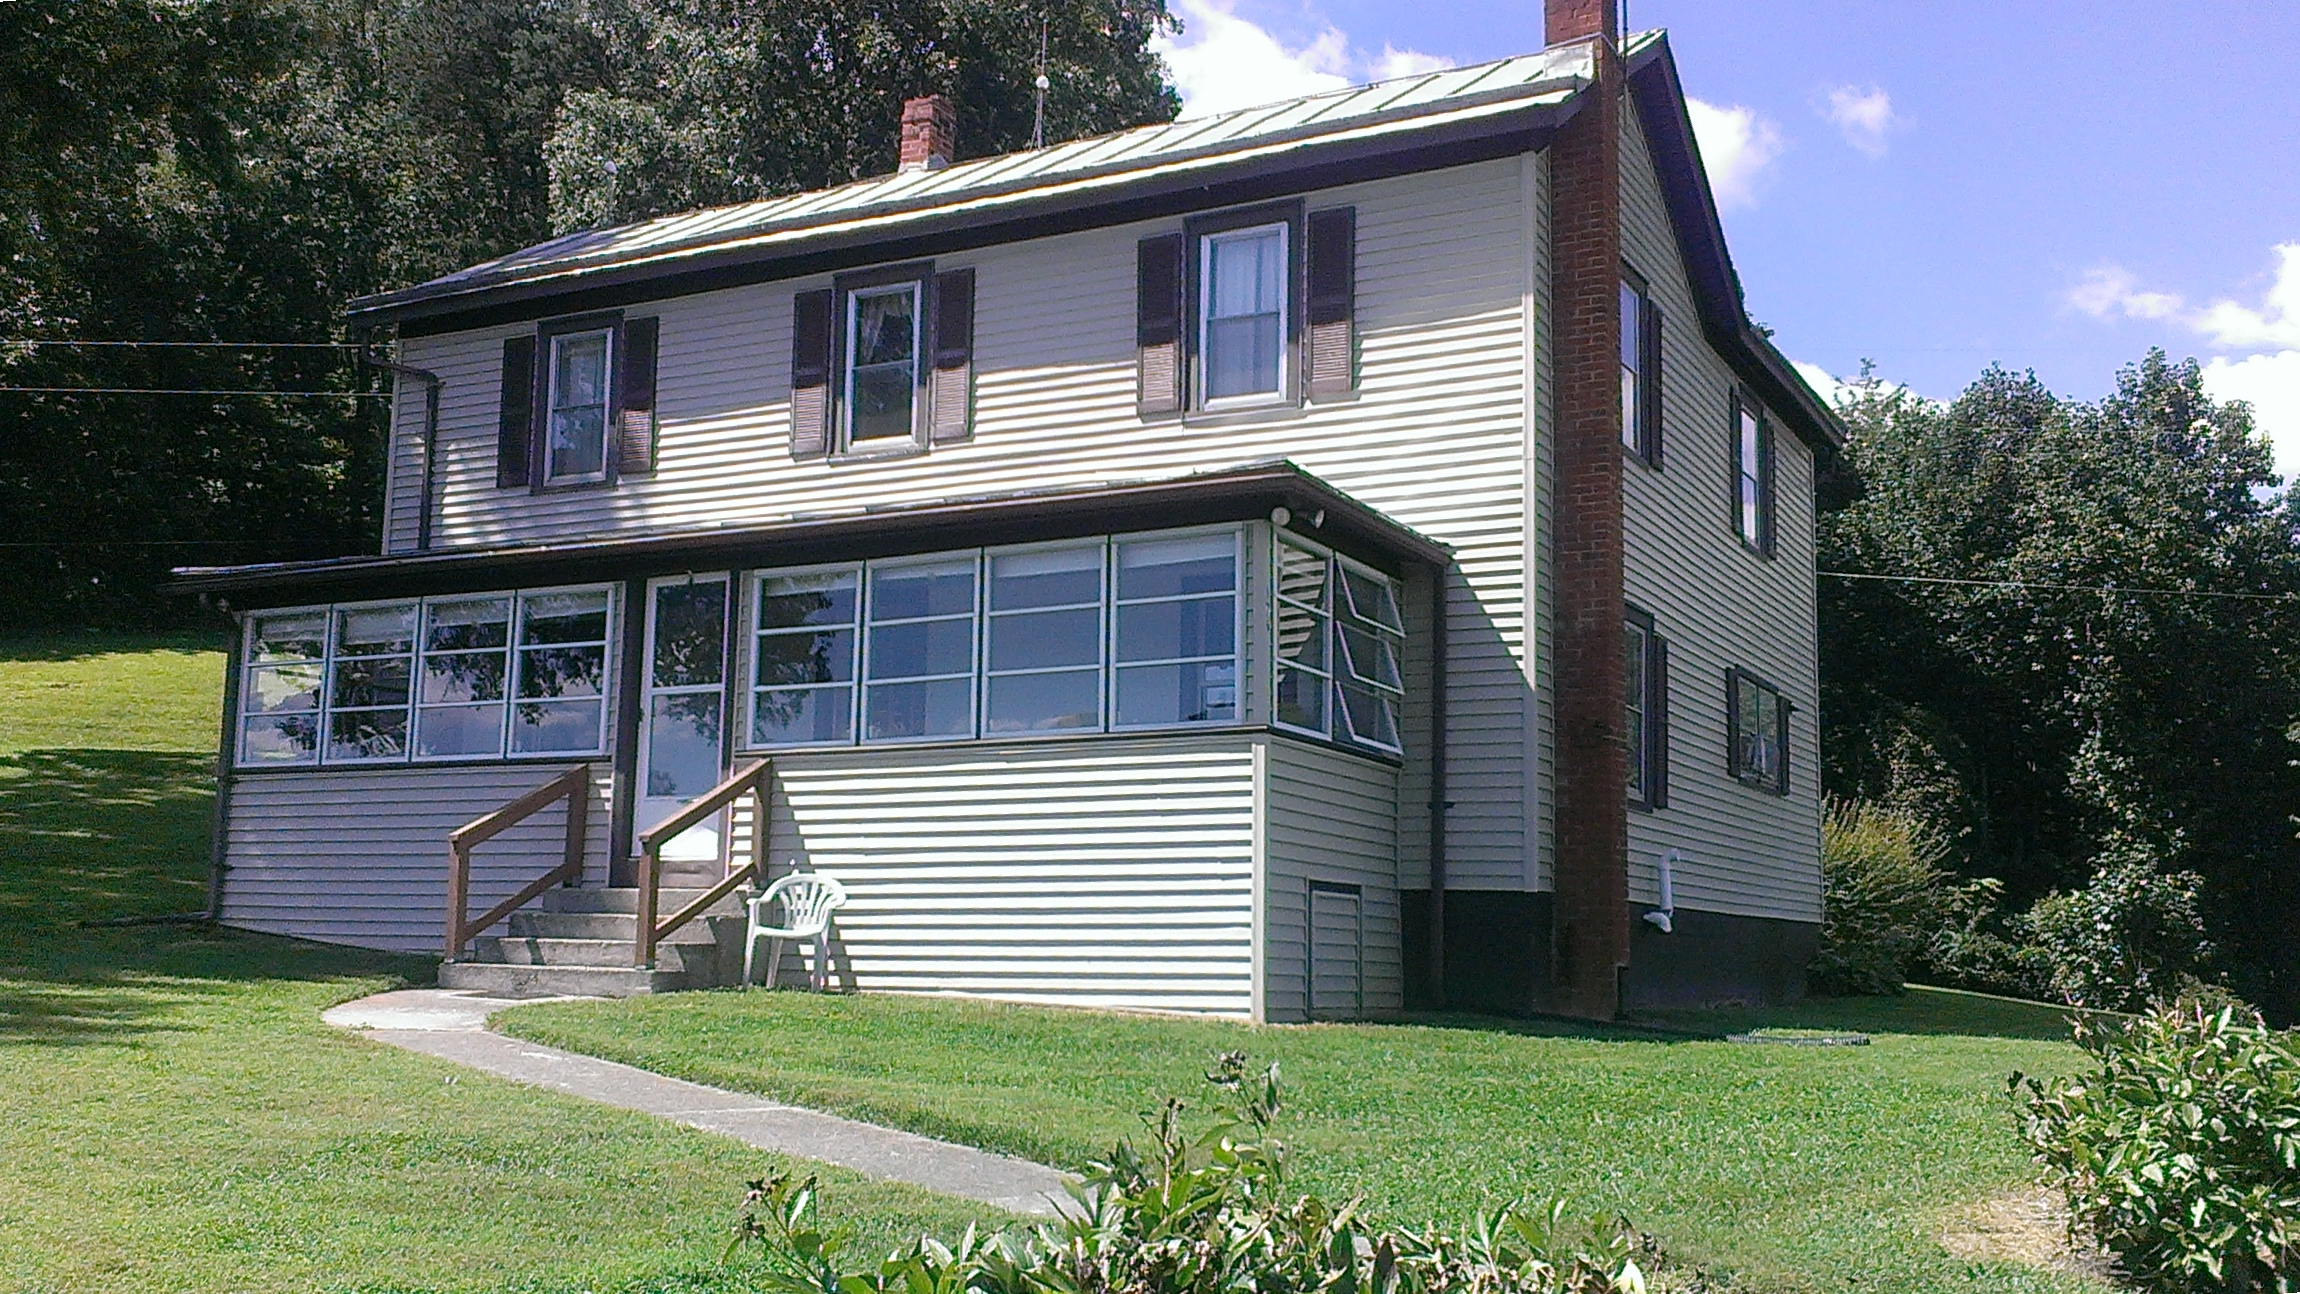 Farmhouse exterior.jpg